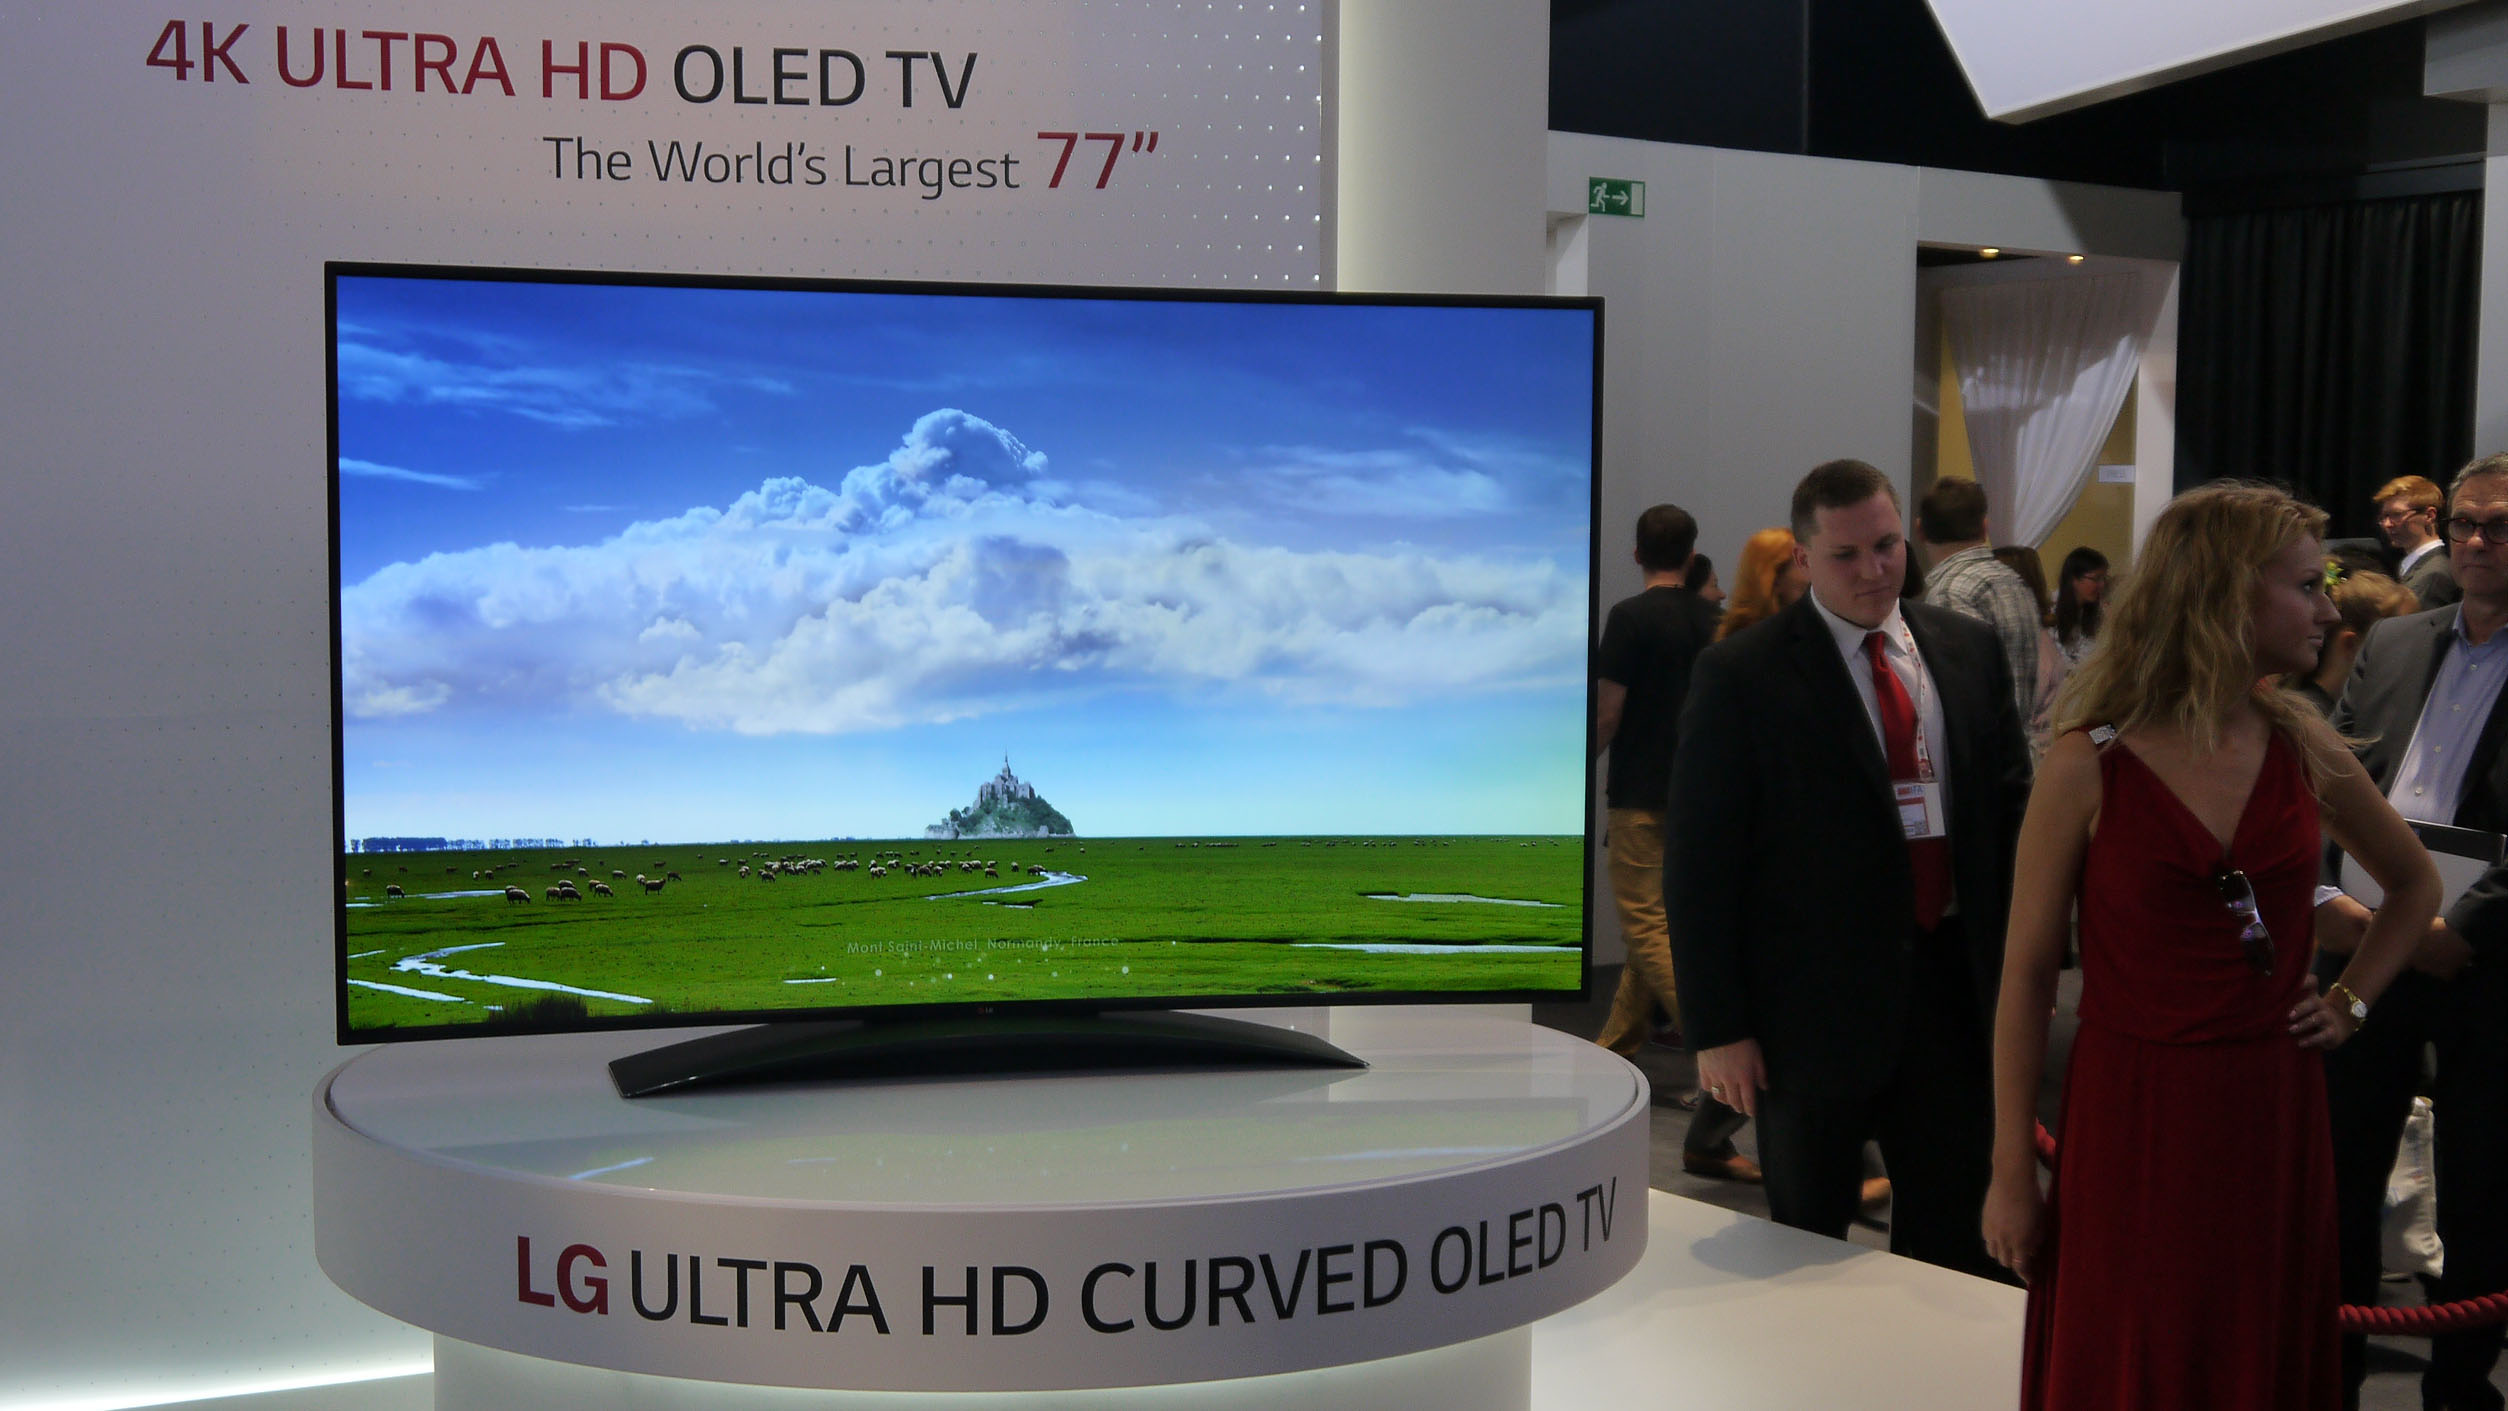 LG and Samsung put aside OLED patent problems for the good of